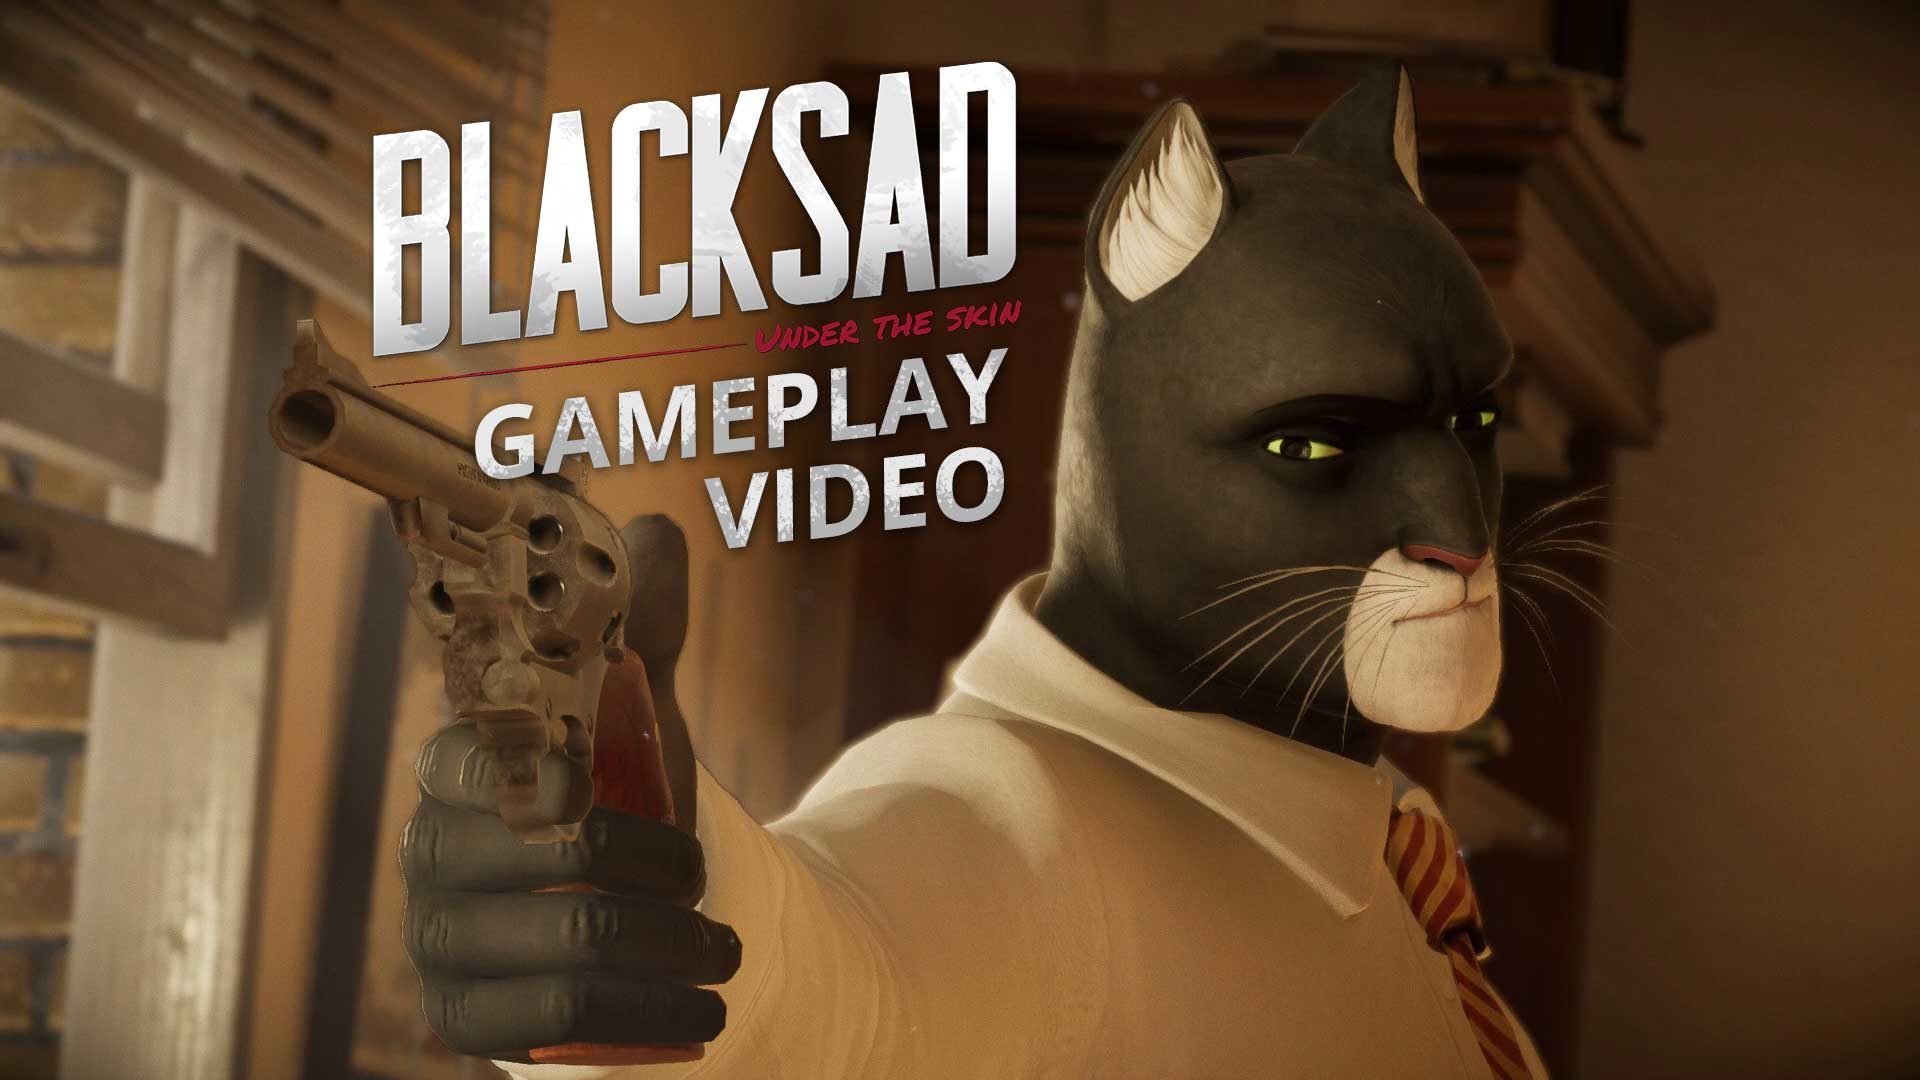 blacksad gameplay video